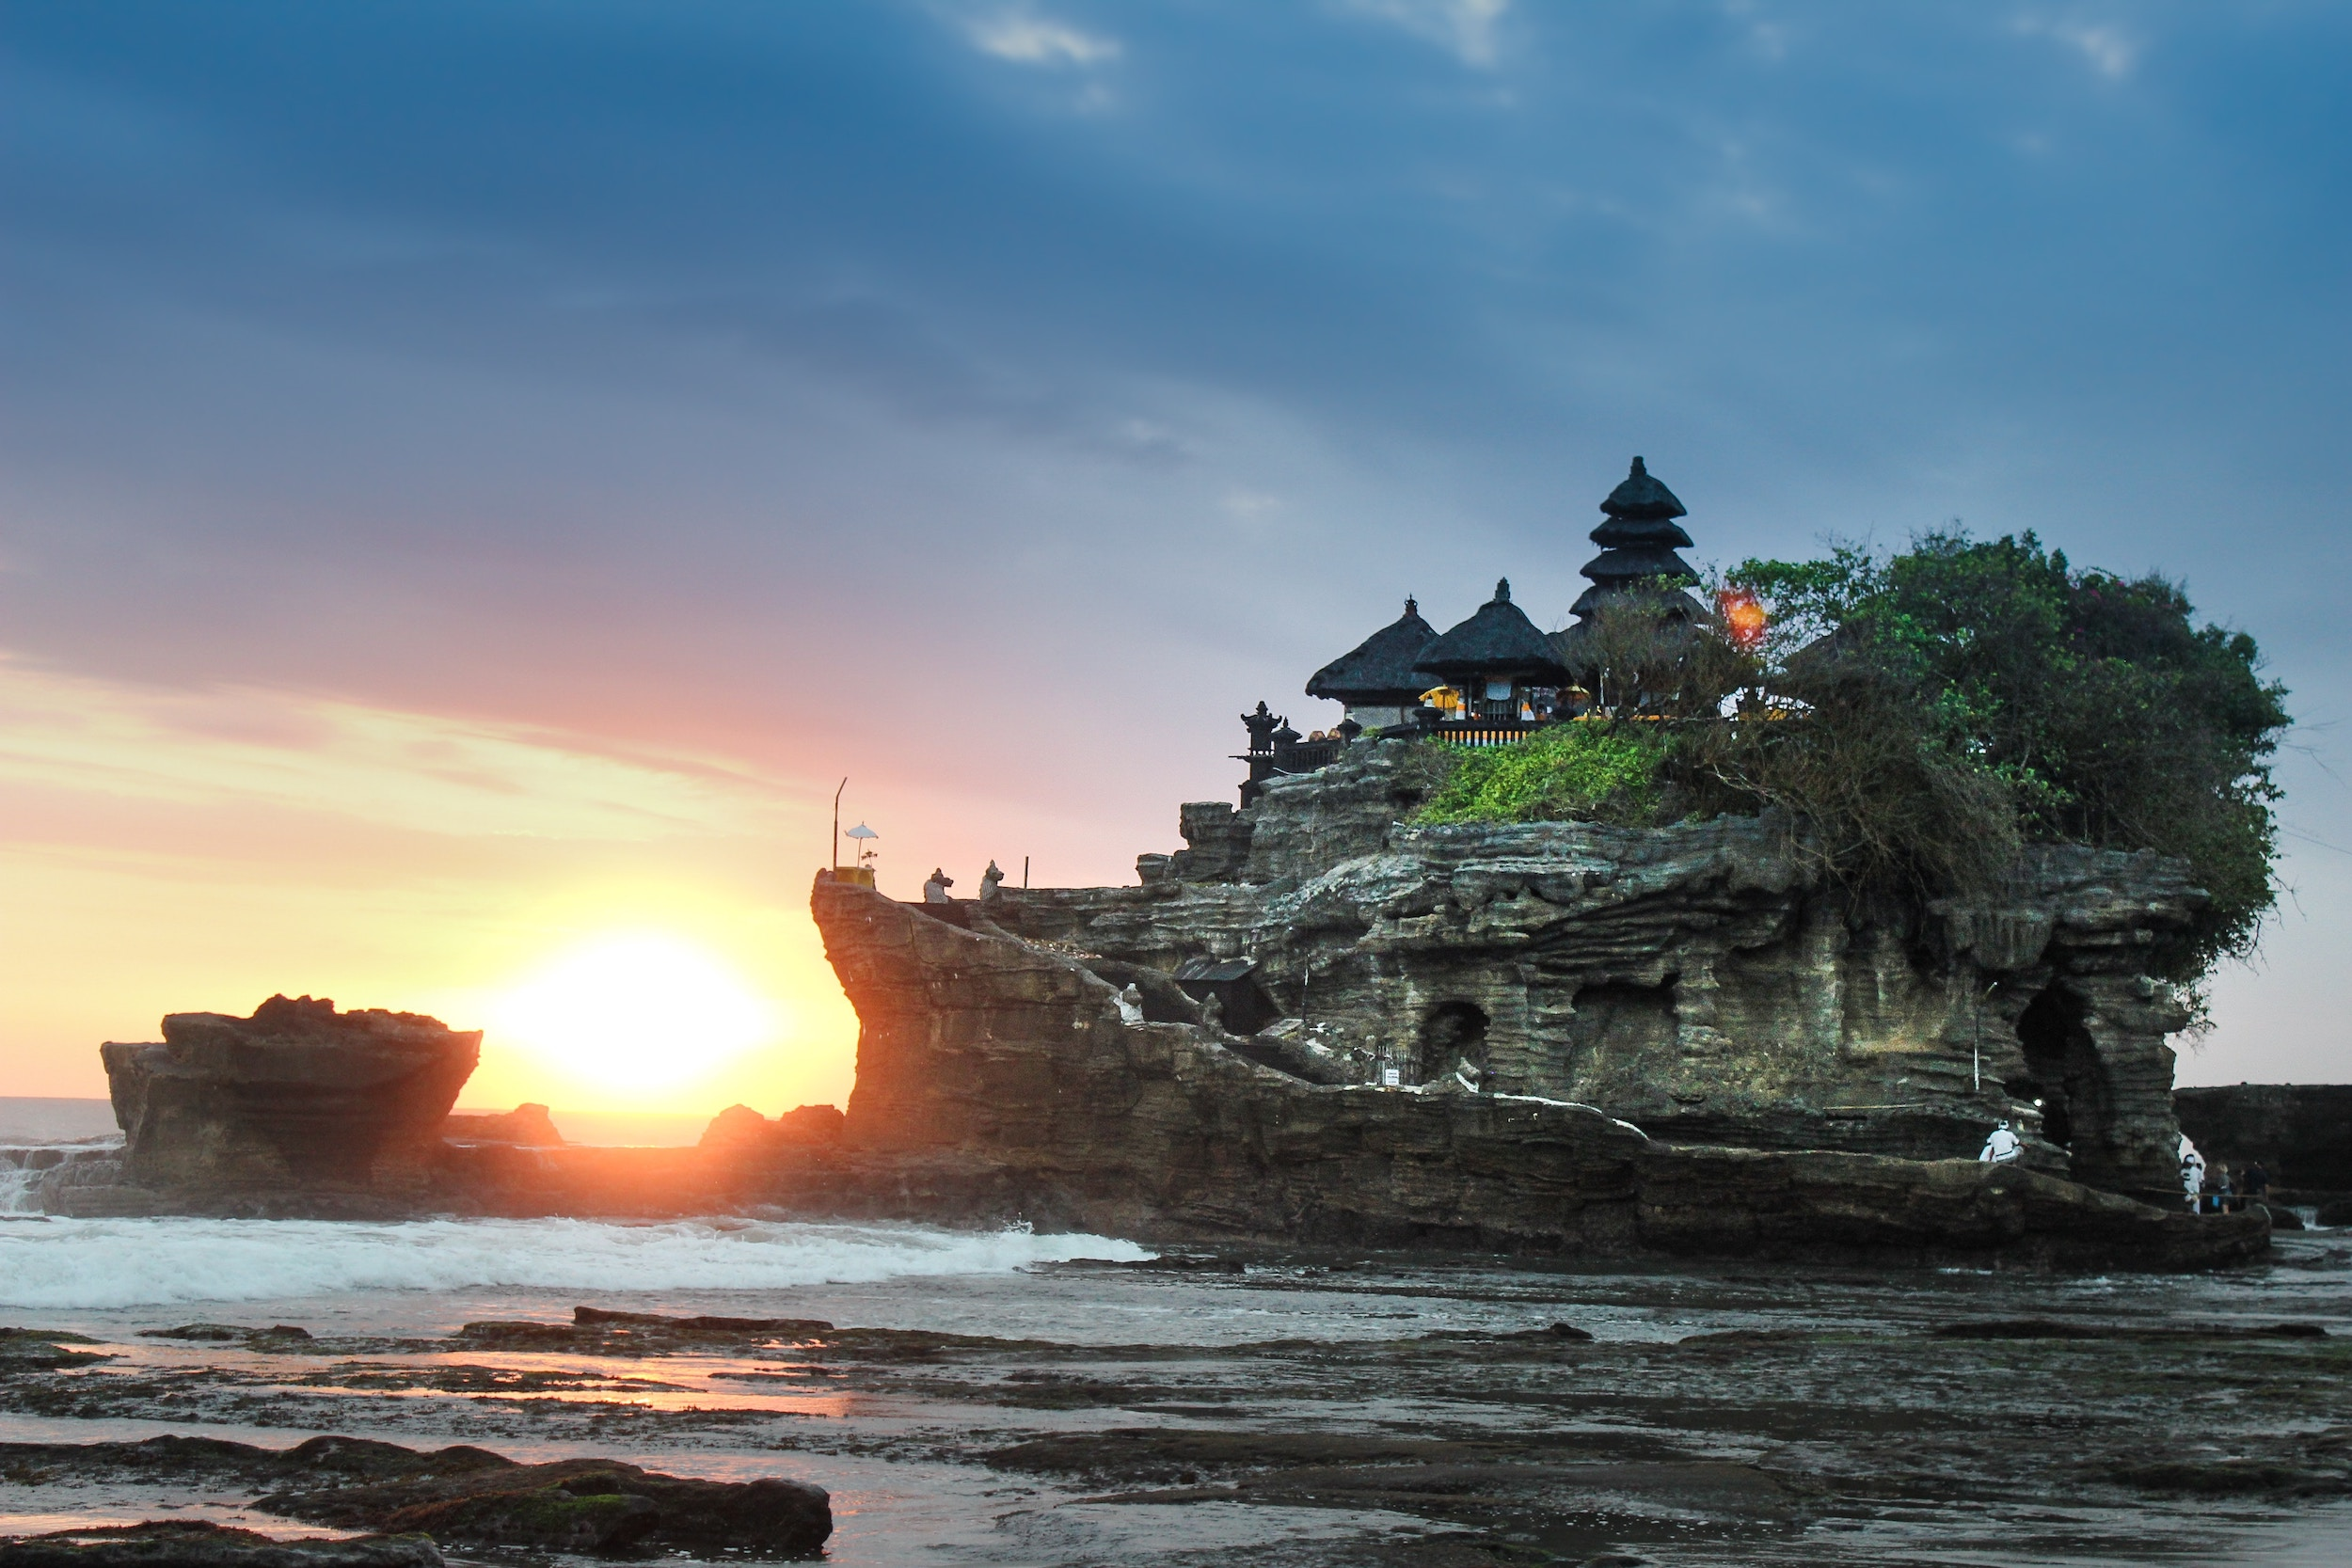 A temple in Bali, Indonesia, built on top of rocks in the sea